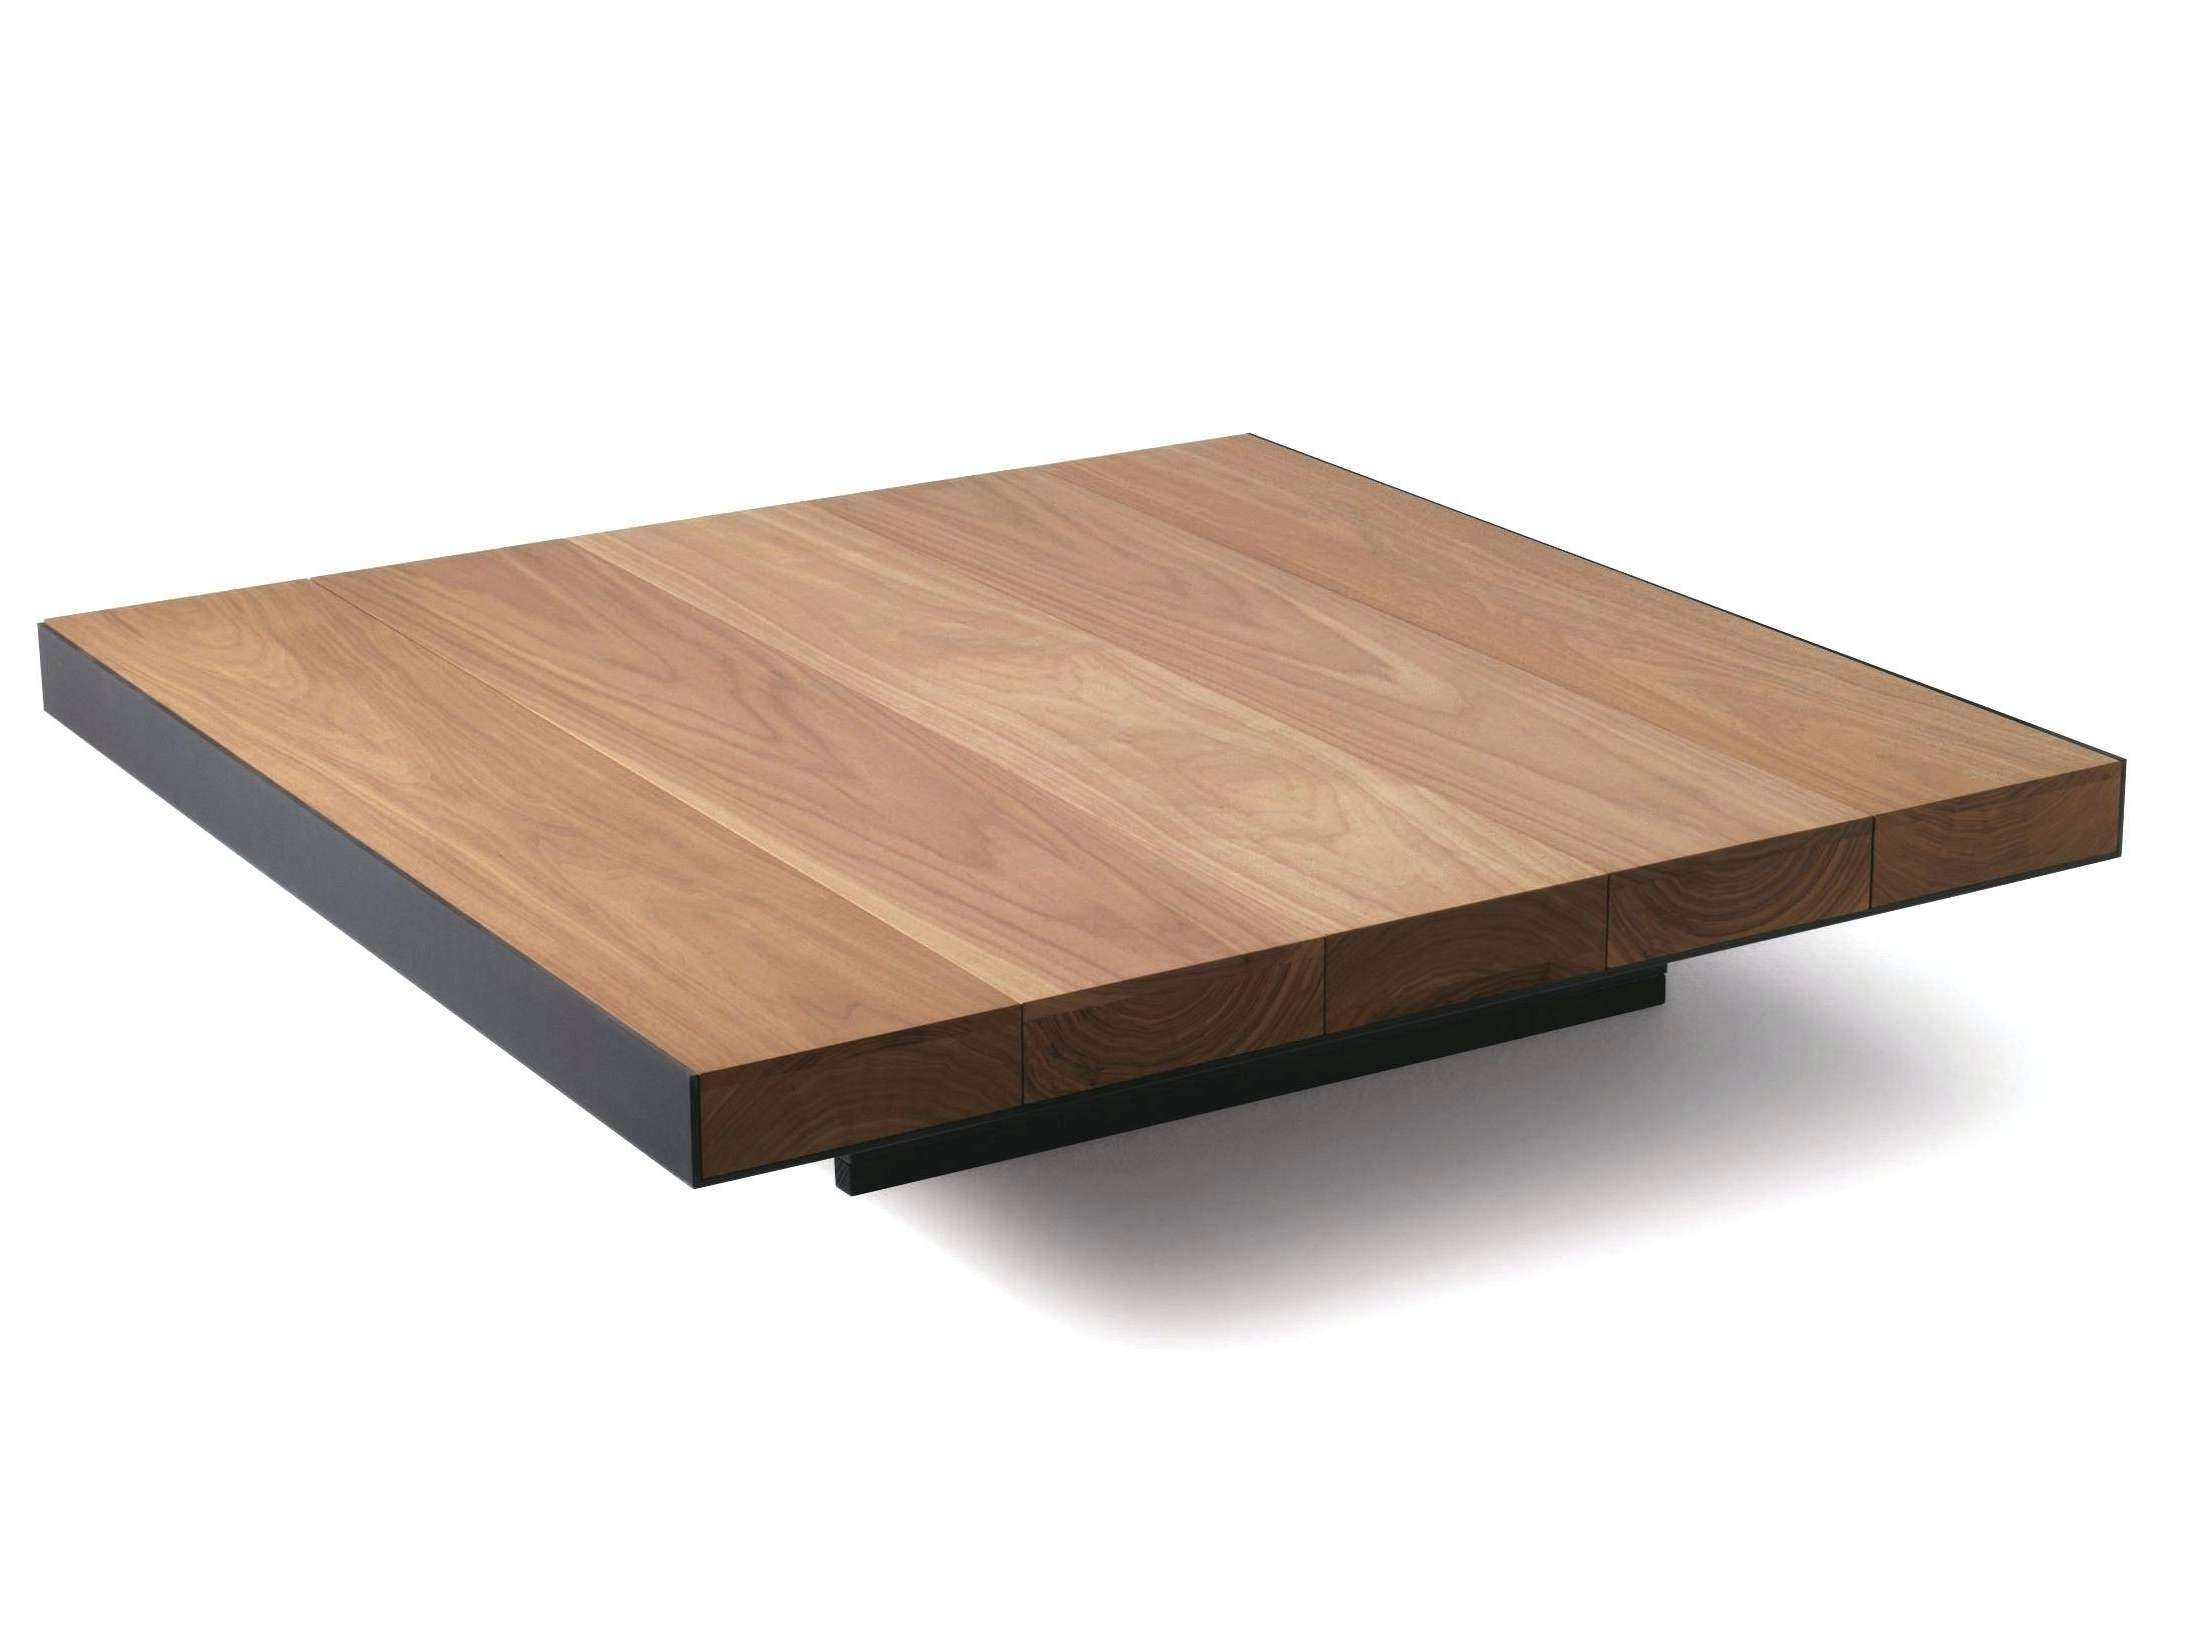 Awesome Low Wooden Coffee Table – Mediasupload Inside Latest Large Low Wooden Coffee Tables (View 11 of 20)